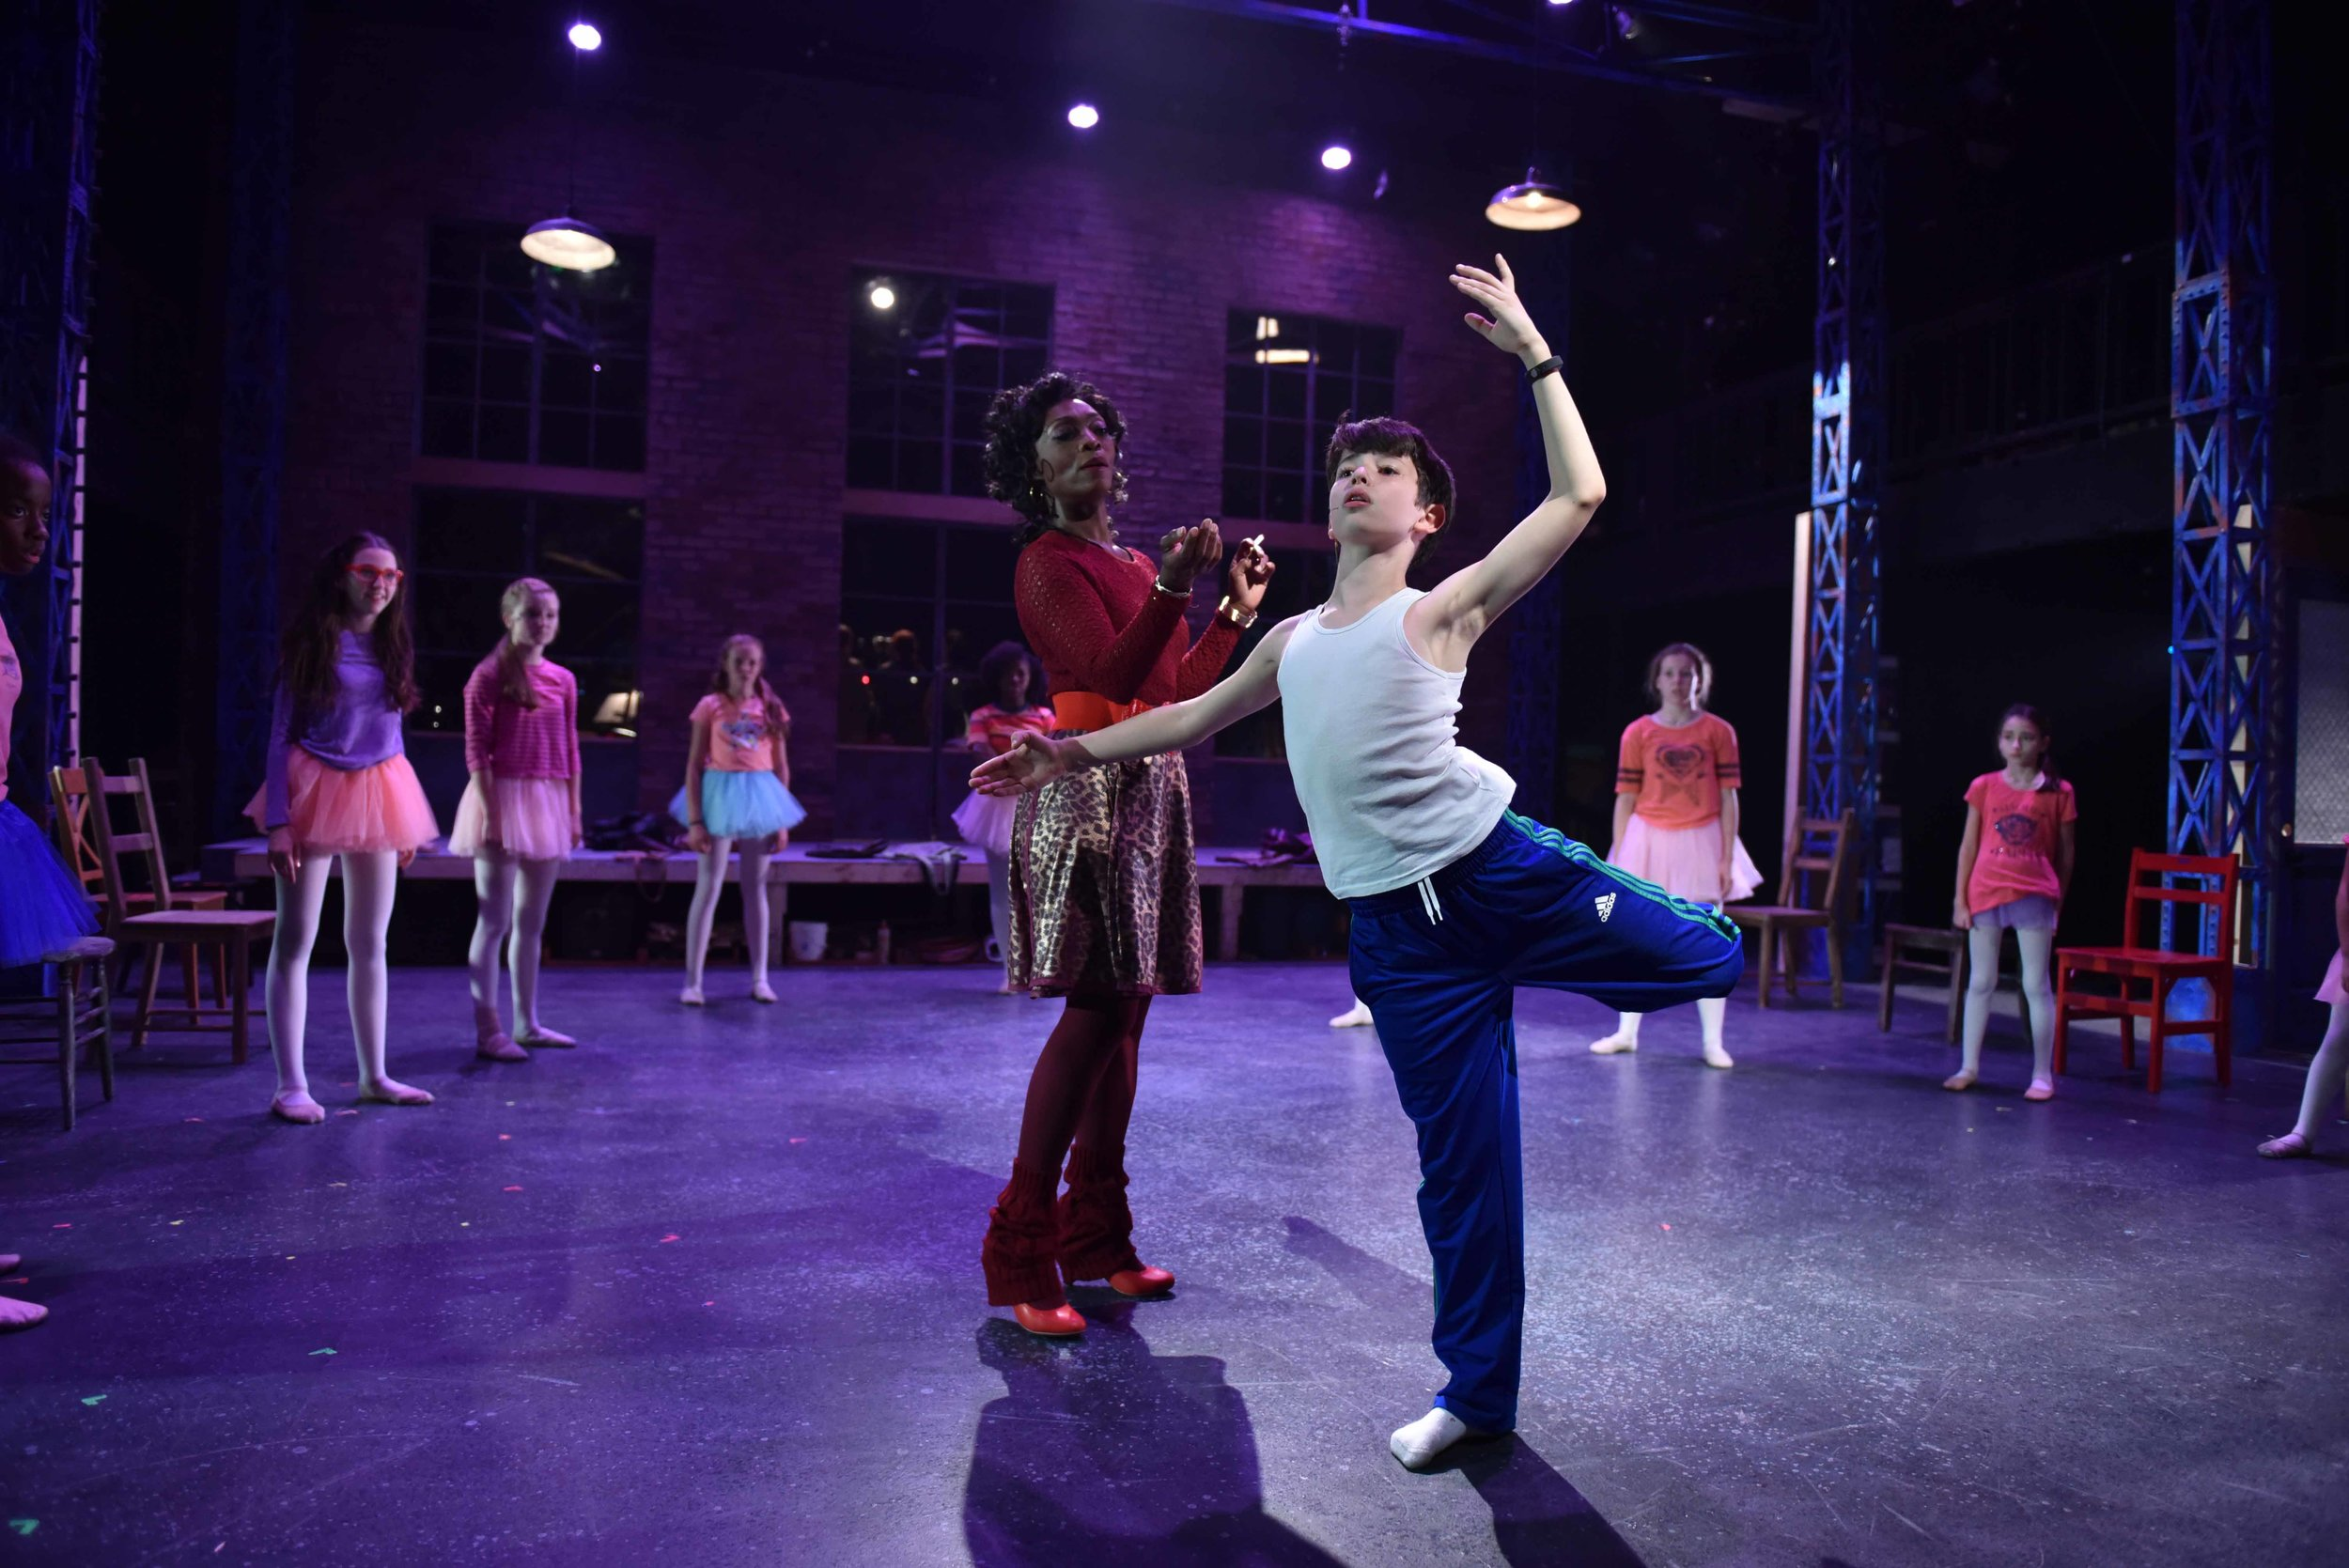 """Shanésia Davis as """"Mrs. Wilkinson,"""" Jacob Kaiser as """"Billy Elliot"""" and ensemble in Porchlight Music Theatre's """"Billy Elliot the Musical."""" Photo by Michael Courier"""